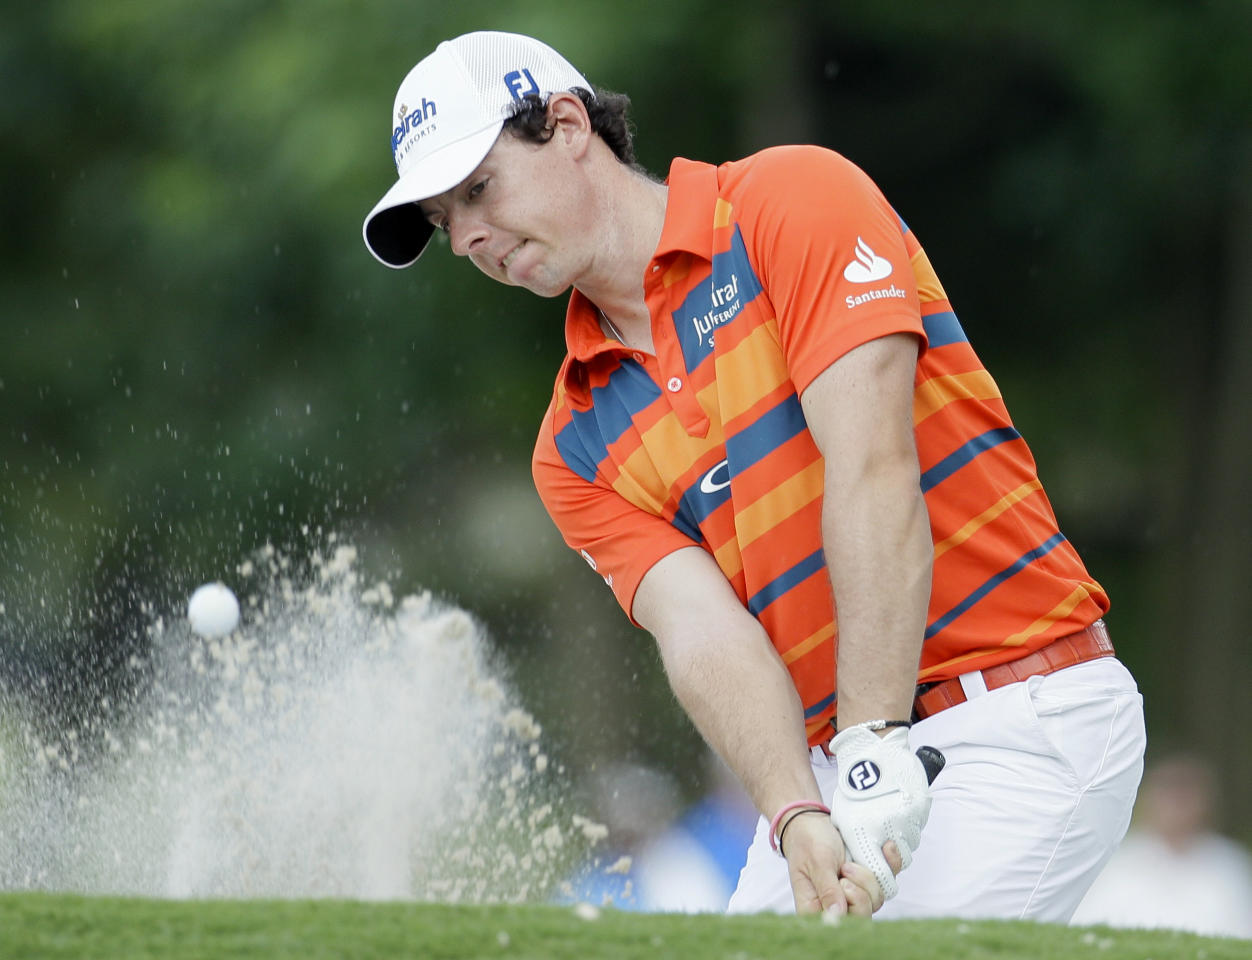 Rory McIlroy, of Northern Ireland, hits from the sand on the 17th hole during the second round of the St. Jude Classic golf tournament on Friday, June 8, 2012, in Memphis, Tenn. McIlroy finished with a two-round score of 7-under-par 133. (AP Photo/Mark Humphrey)